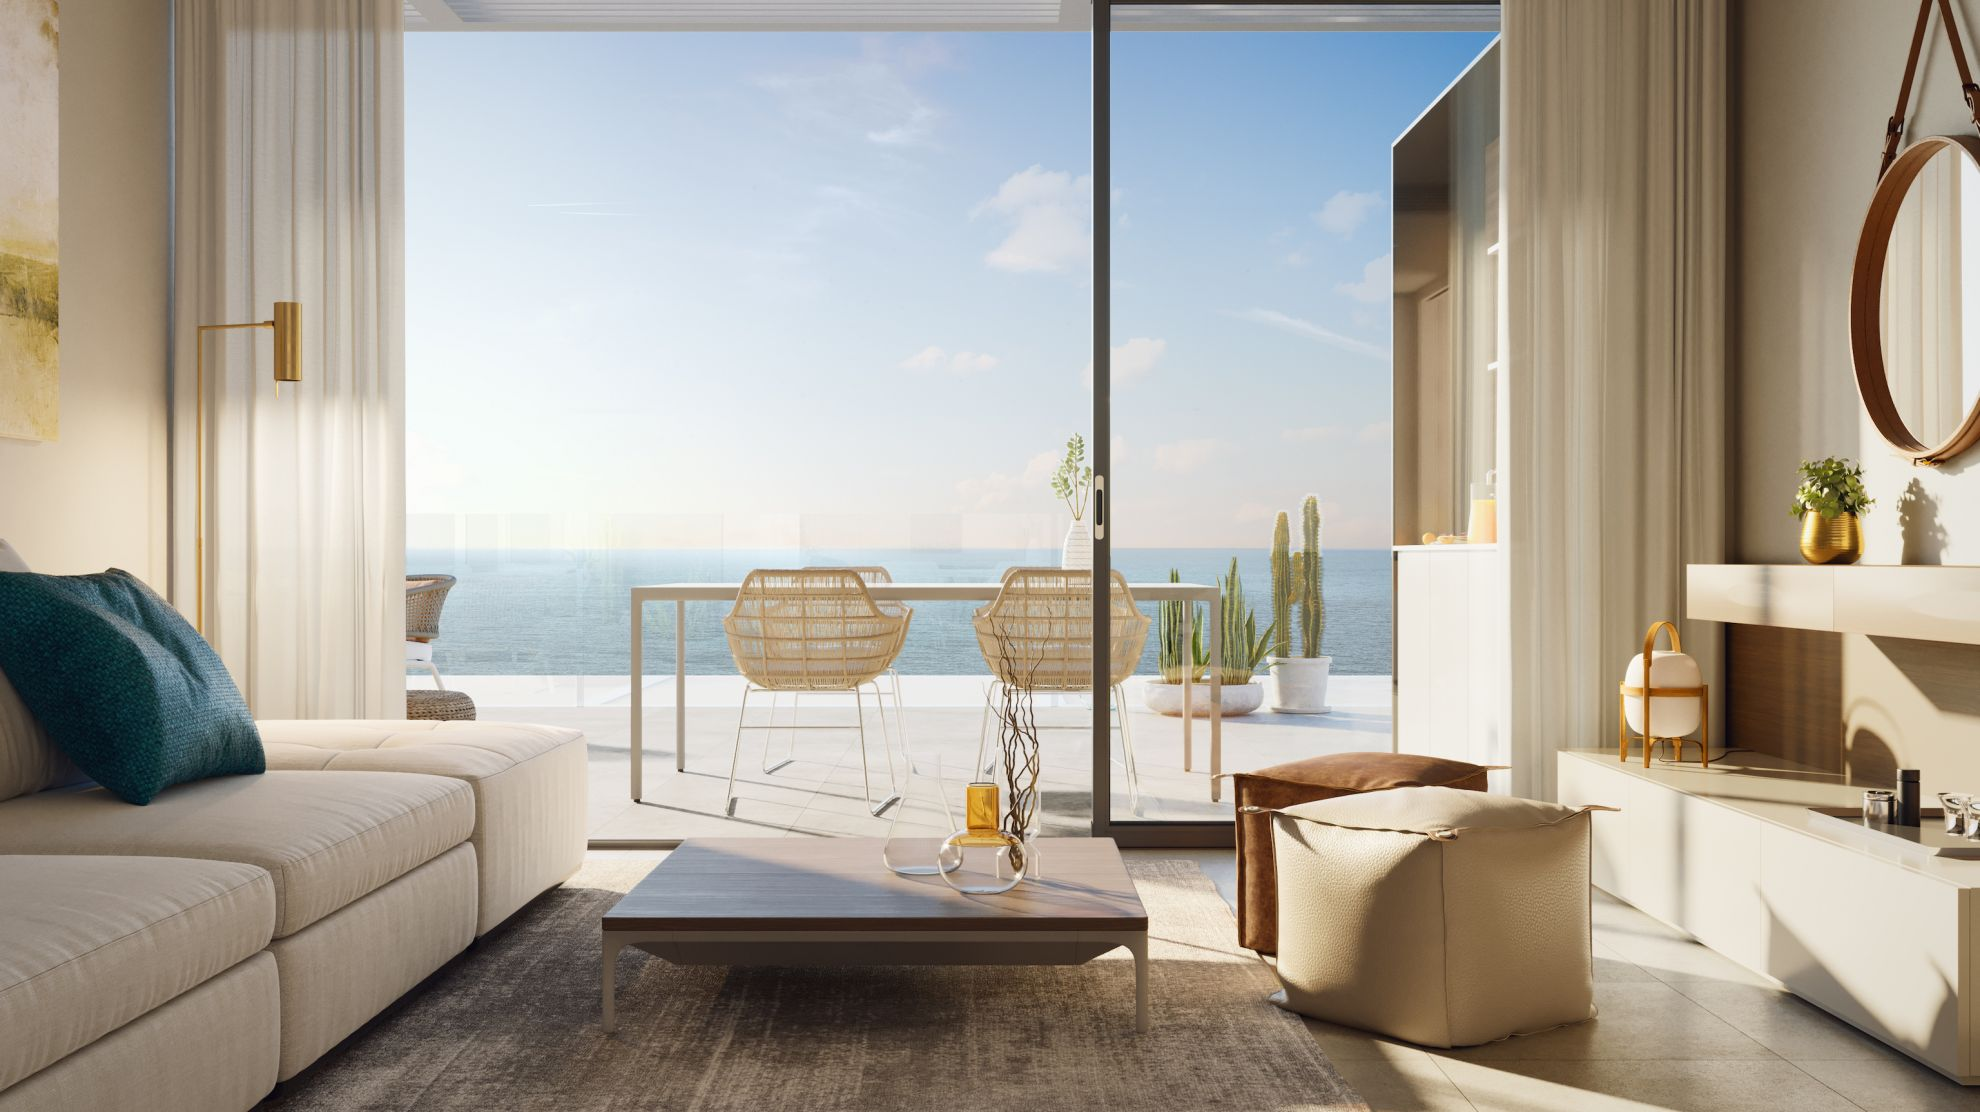 2 and 3 bedroom penthouse-style apartments with big terraces overlookg the sea. House 3 11